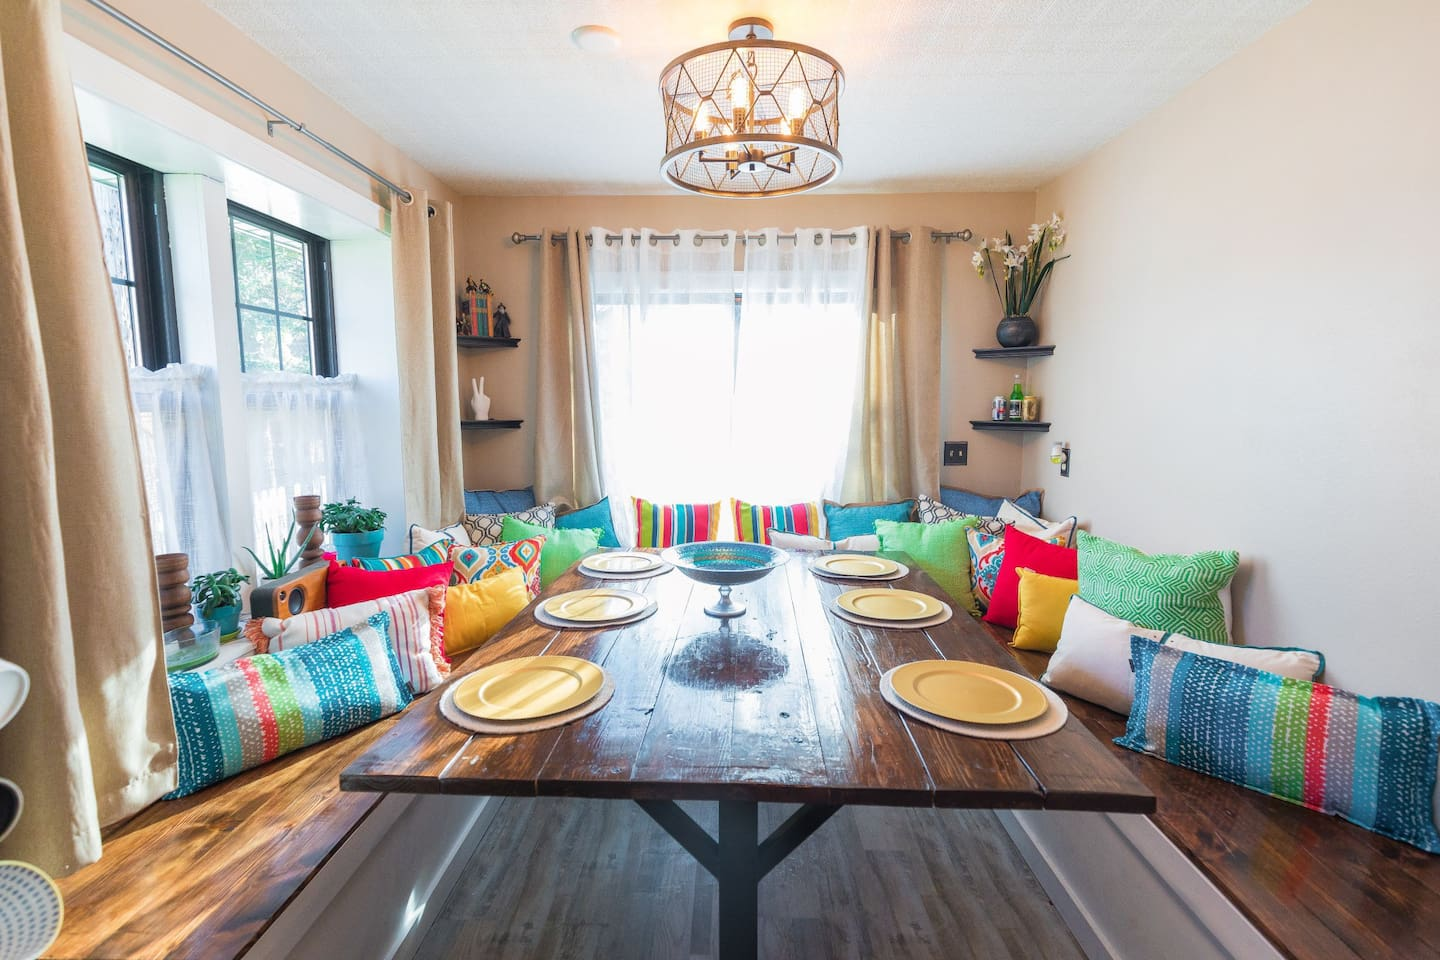 Enjoy a meal at this large family table